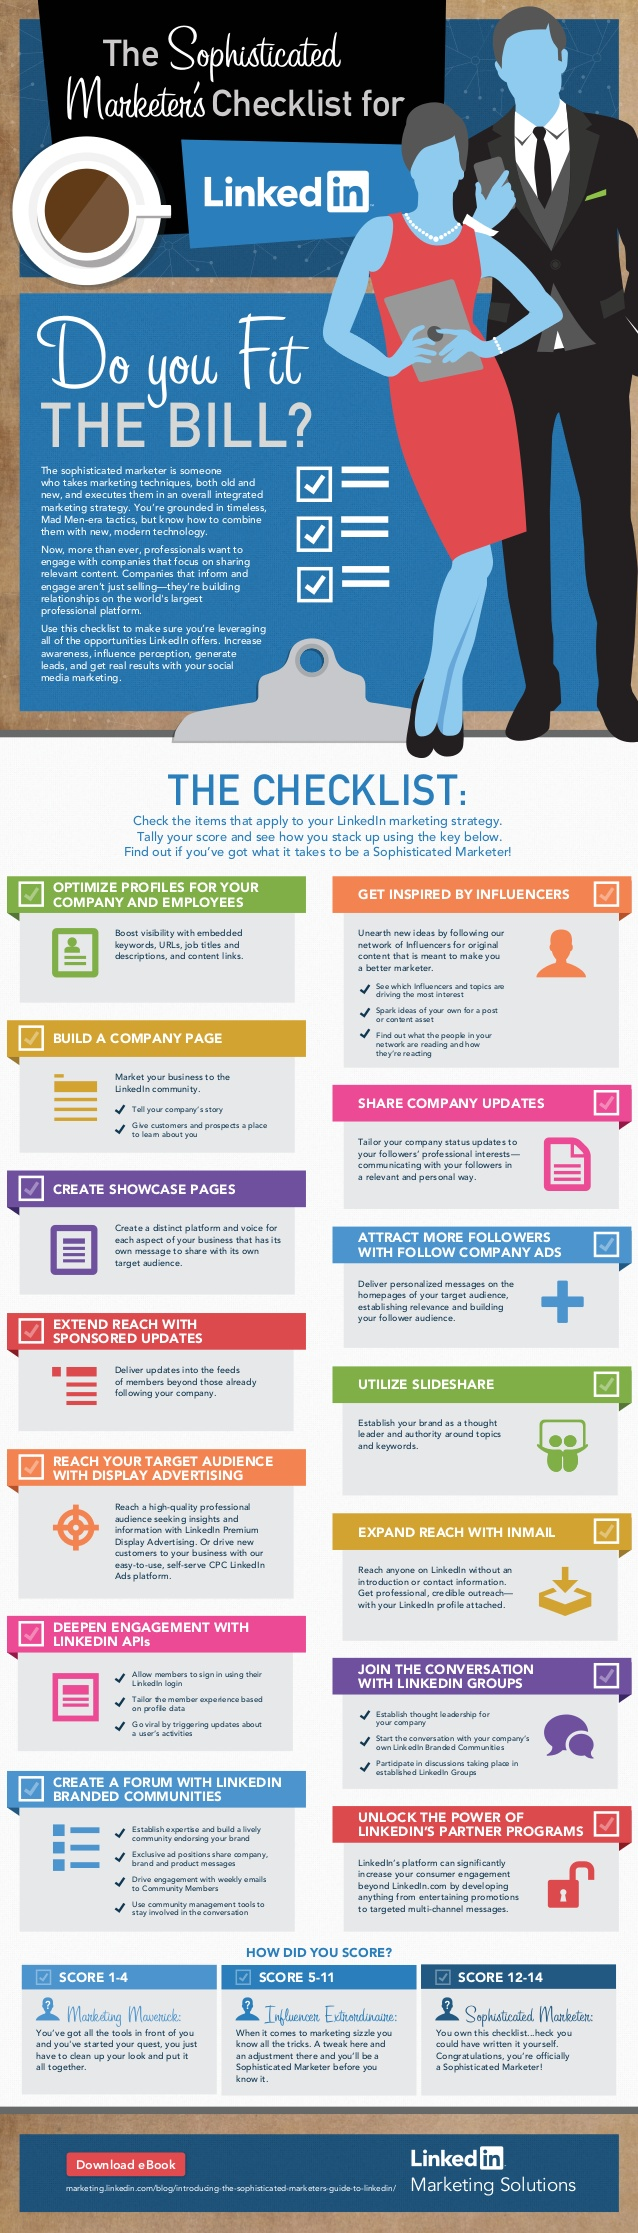 wersm-the-sophisticated-marketers-checklist-for-linkedin-infographic-1-638